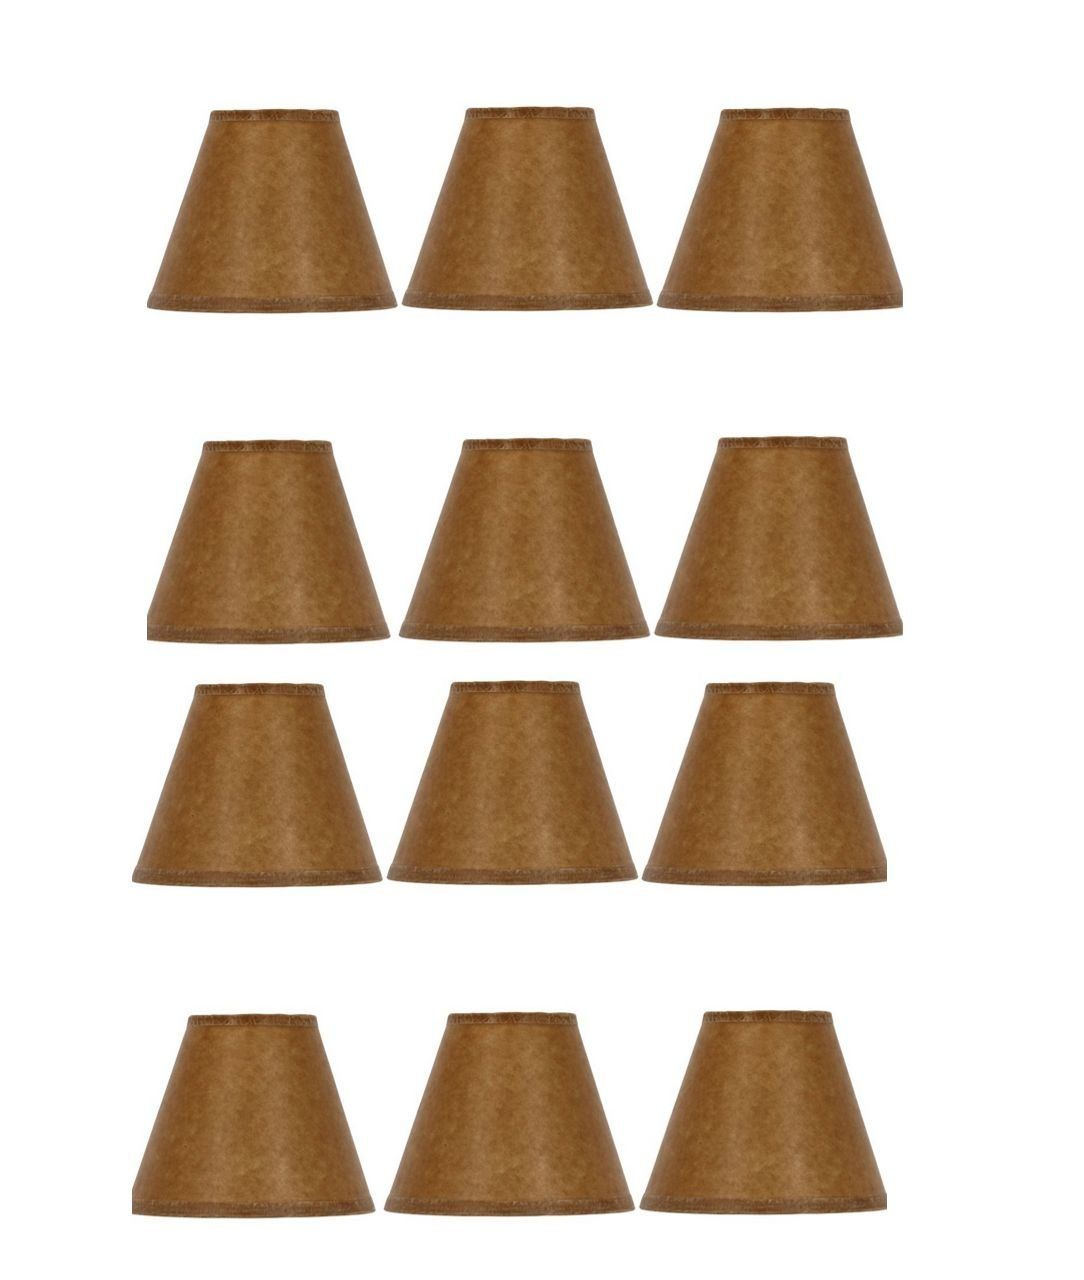 Mini chandelier shades clip on small lamp shade set of twelve oiled mini chandelier shades clip on small lamp shade set of twelve oiled craft paper aloadofball Image collections